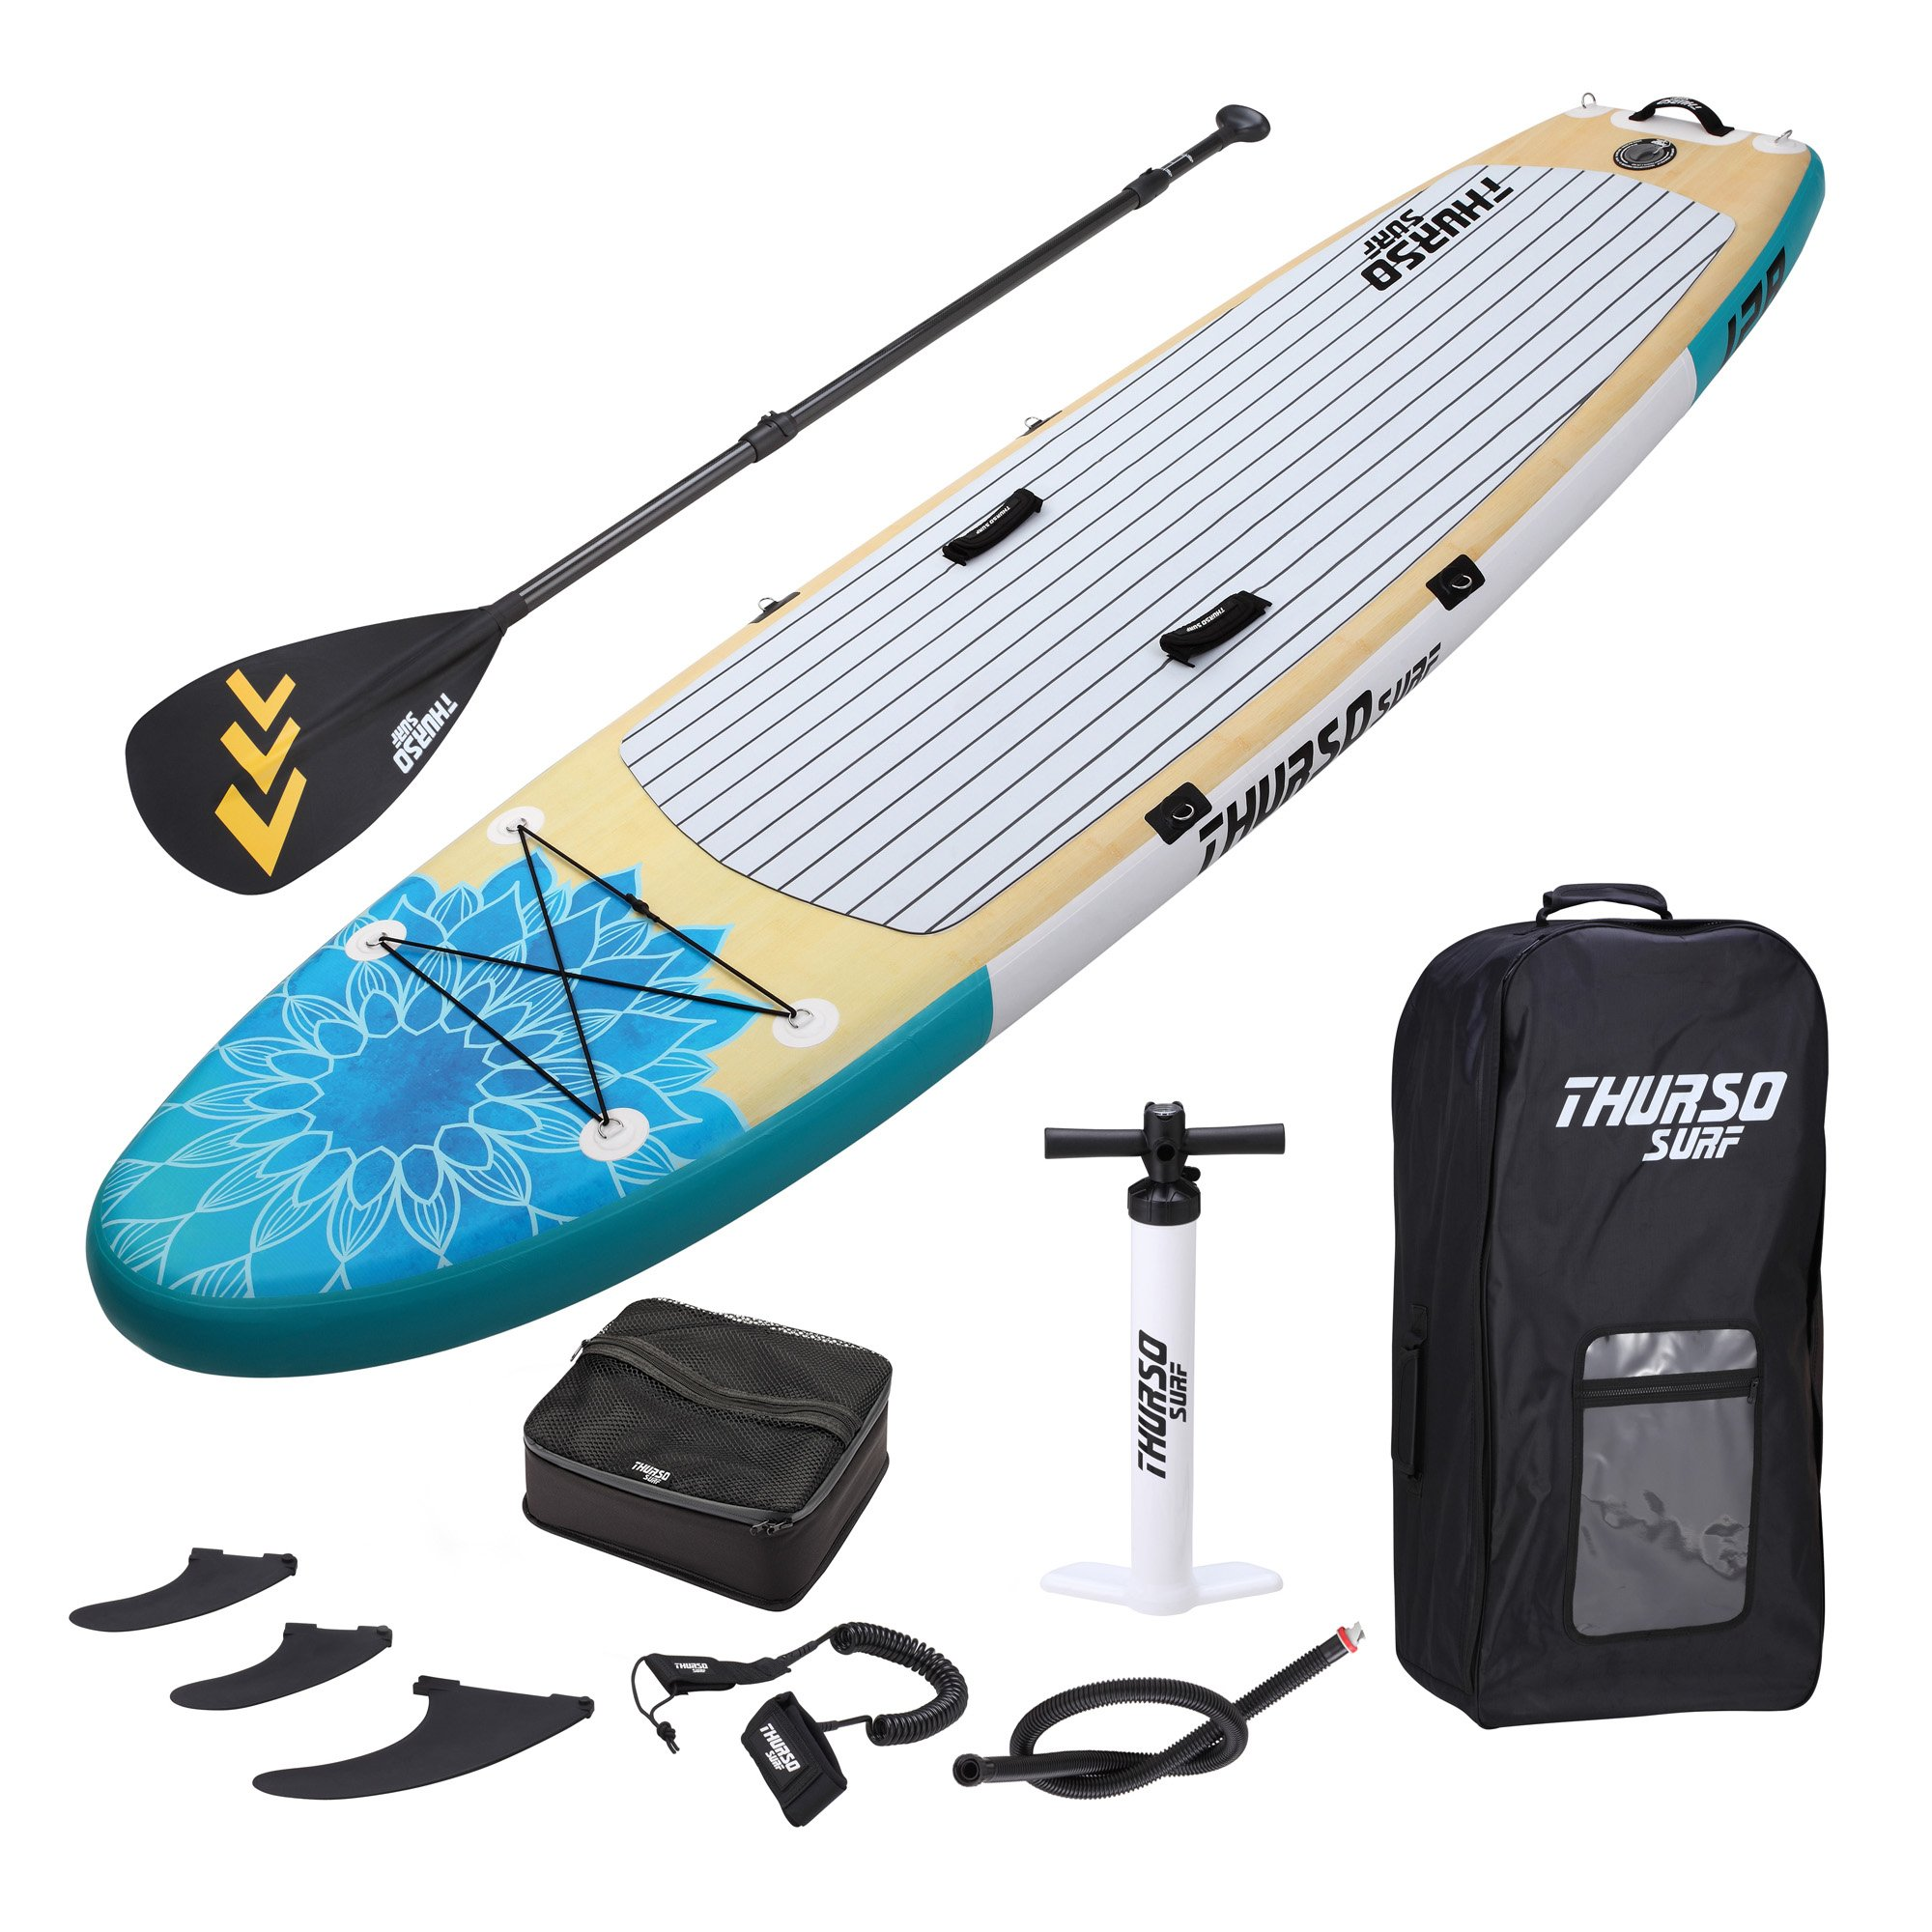 THURSO SURF Tranquility Yoga Inflatable Stand Up Paddle Board SUP 10'8 x 34'' x 6'' TWO LAYER Deluxe Package Includes CARBON Shaft Paddle/2+1 Quick Lock Fins/Deck Bag/Leash/Pump/Backpack